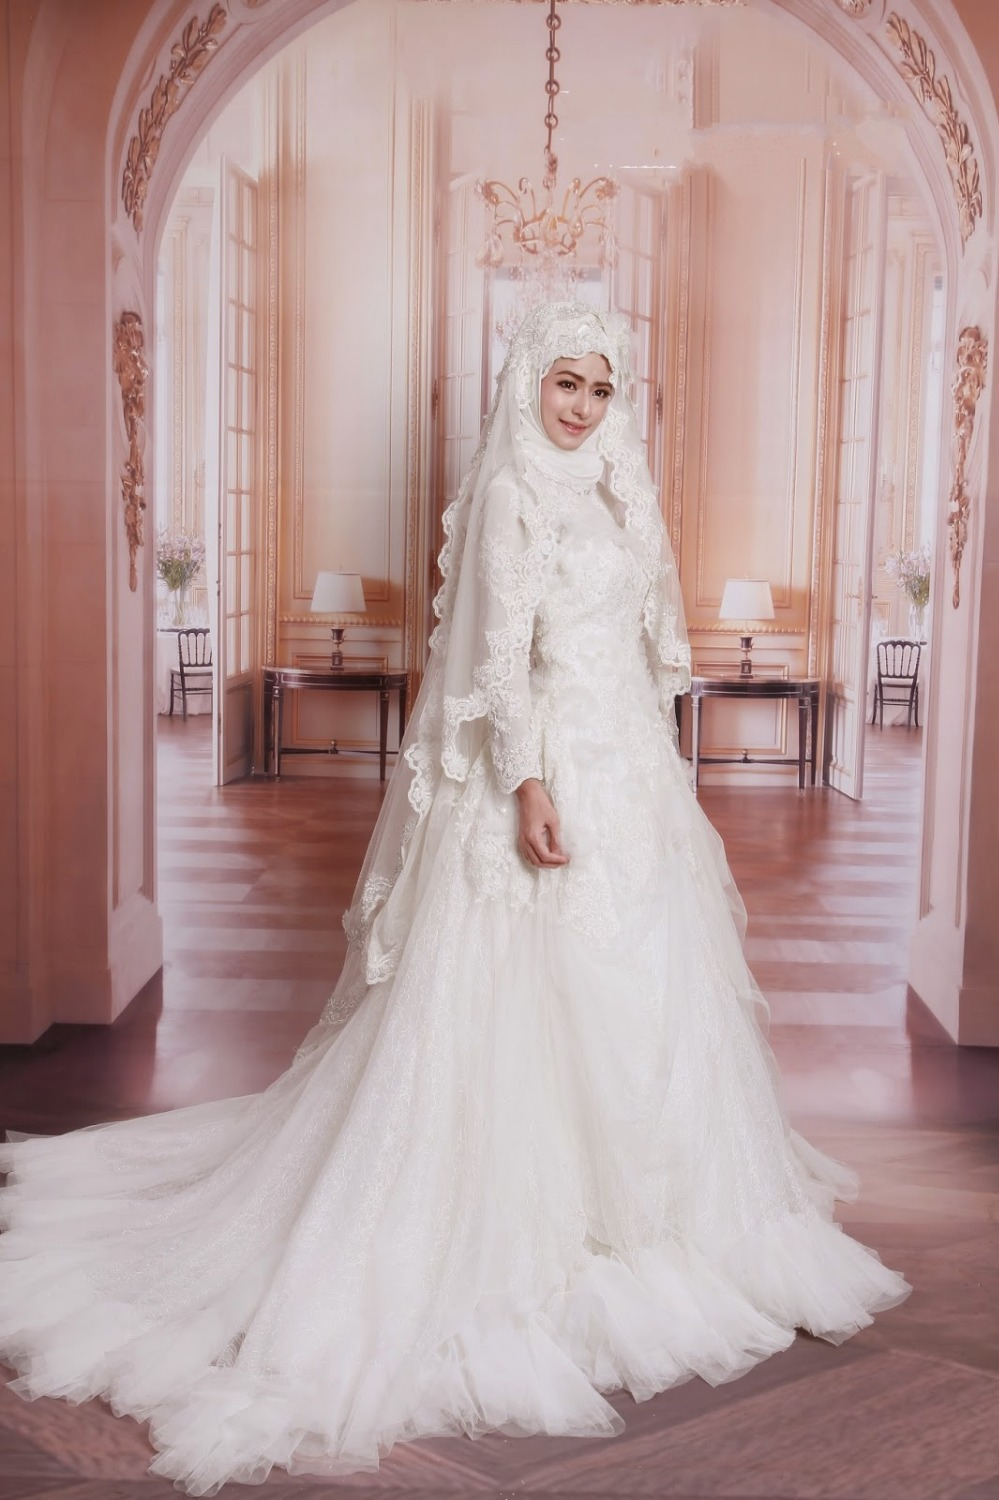 Top Quality High Neck Arabic Hijab Muslim Wedding Dresses With Long Sleeve New Appliques Lace White